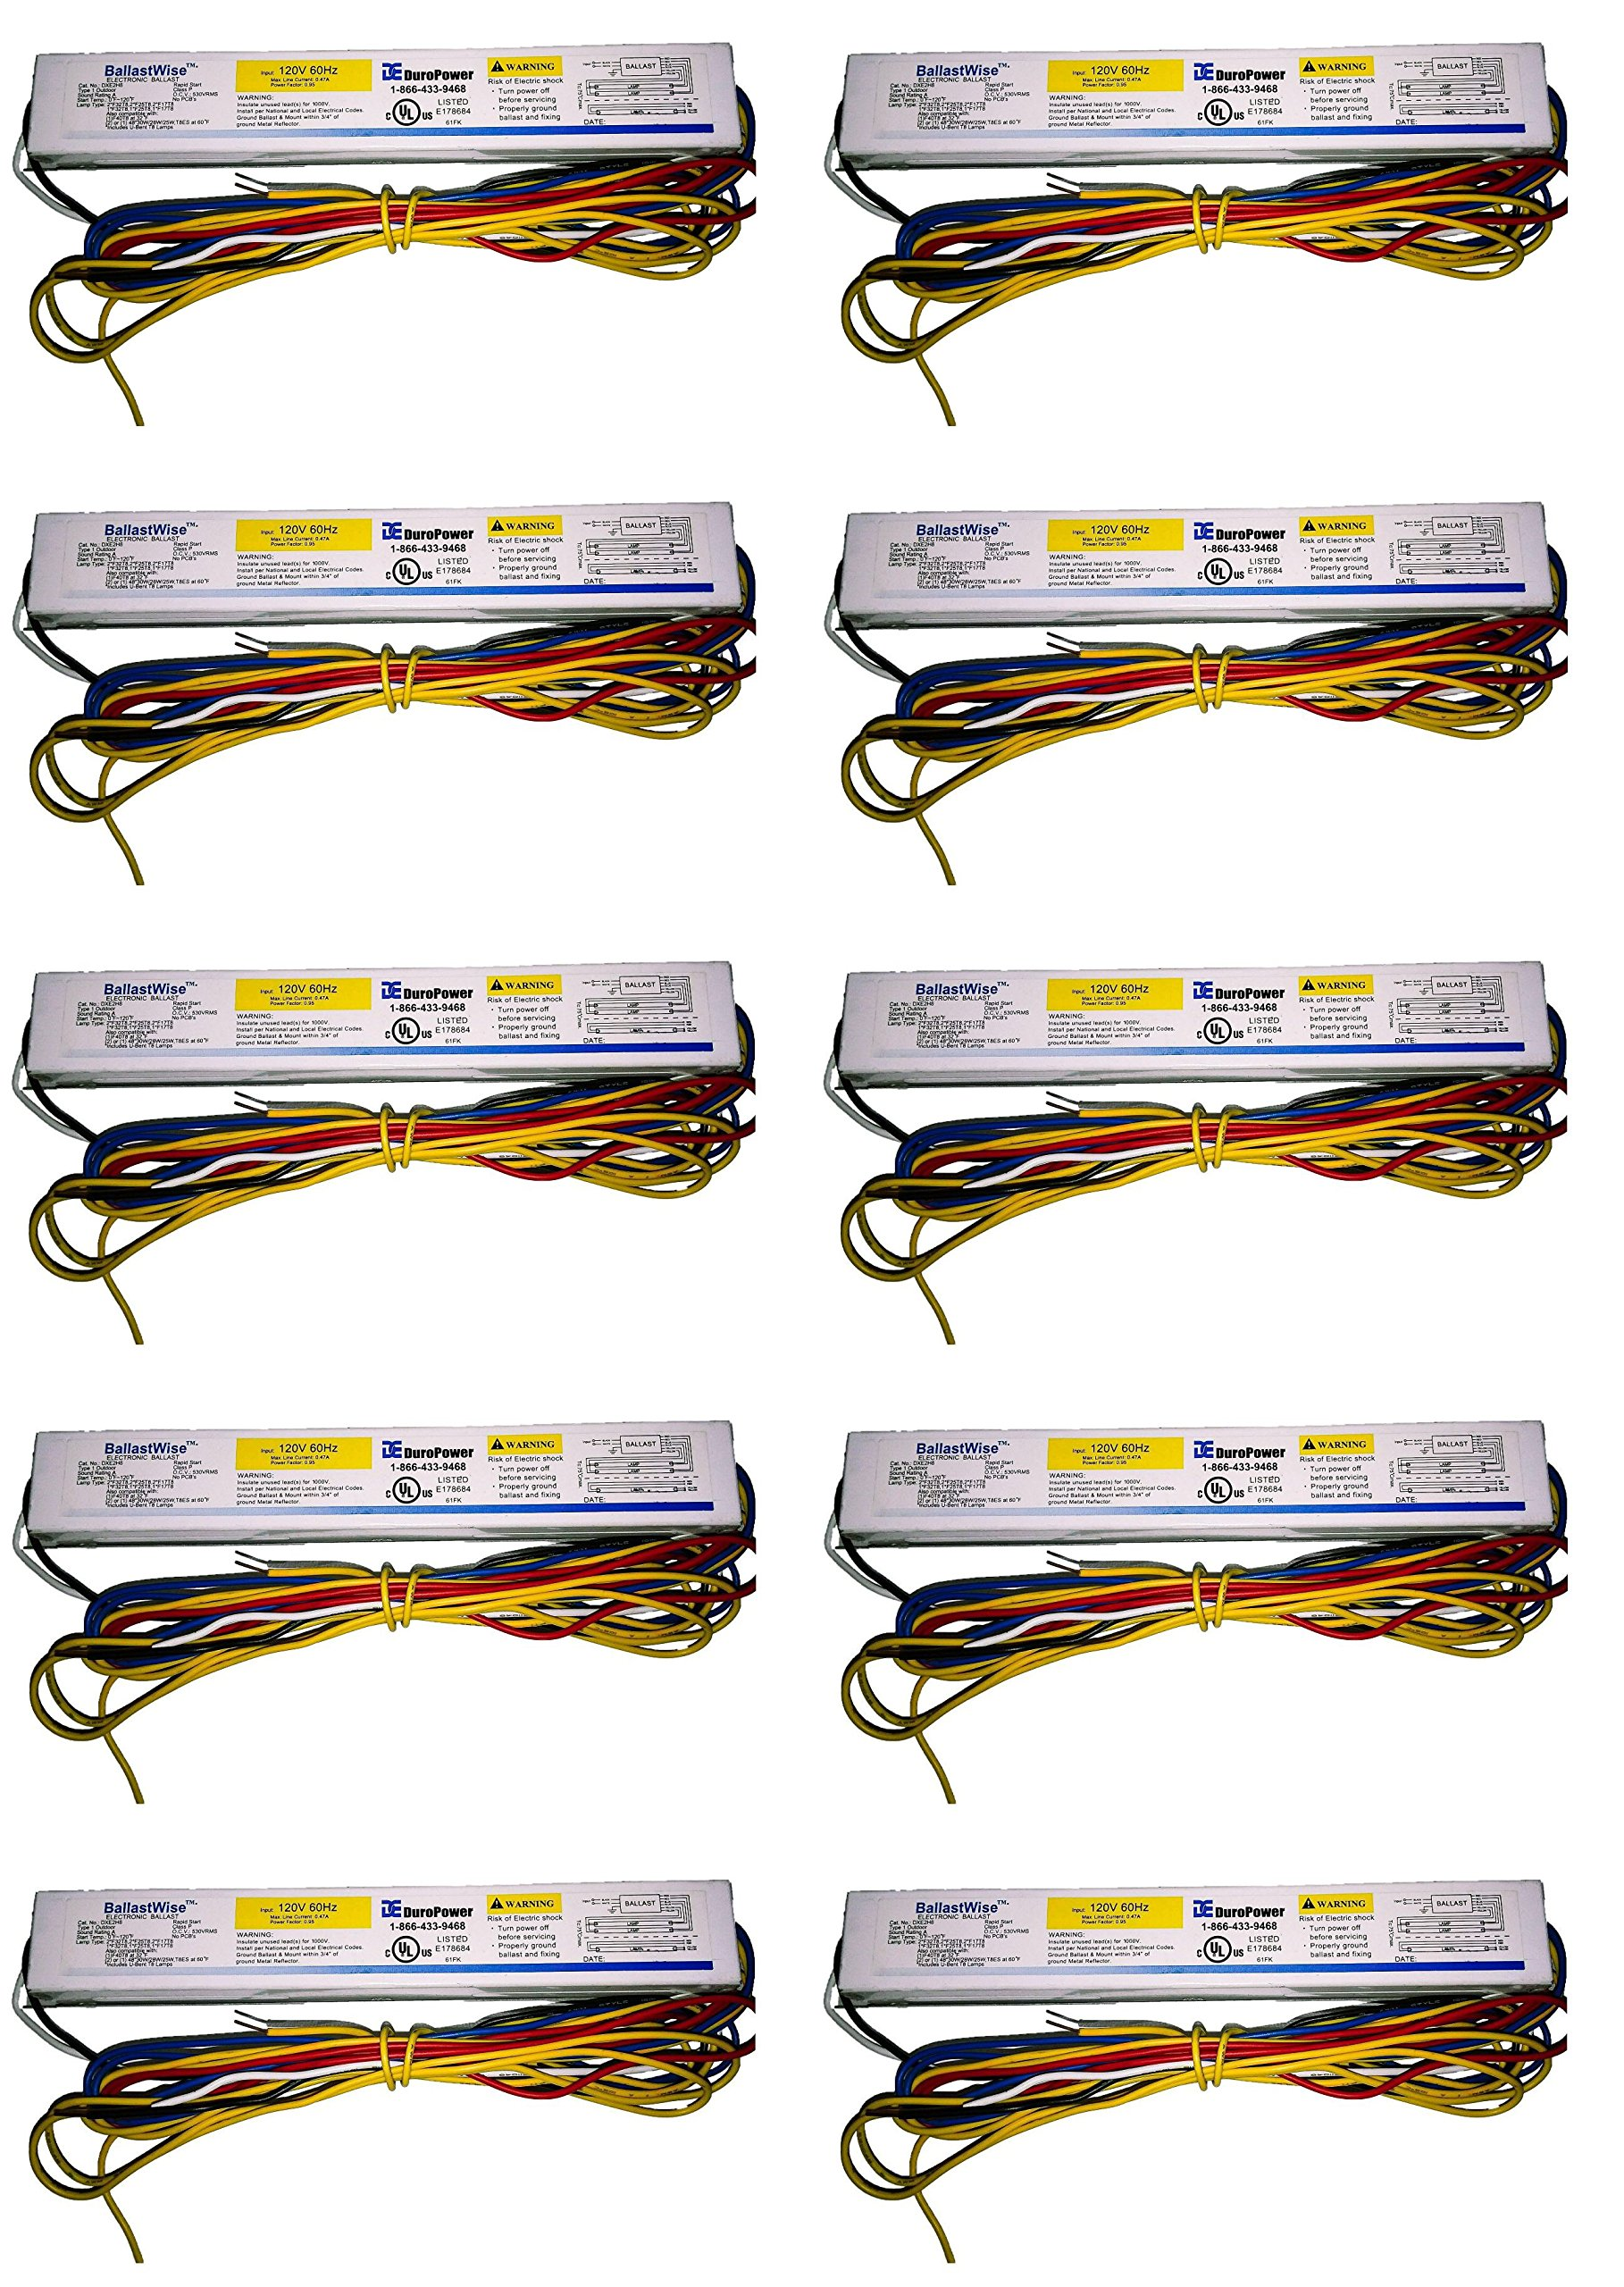 10 BallastWise DXE2H8 T8 Ballasts with wires 58W for (2) F32T8 F25T8 F17T8 (1) F40T12 Bulbs 120V